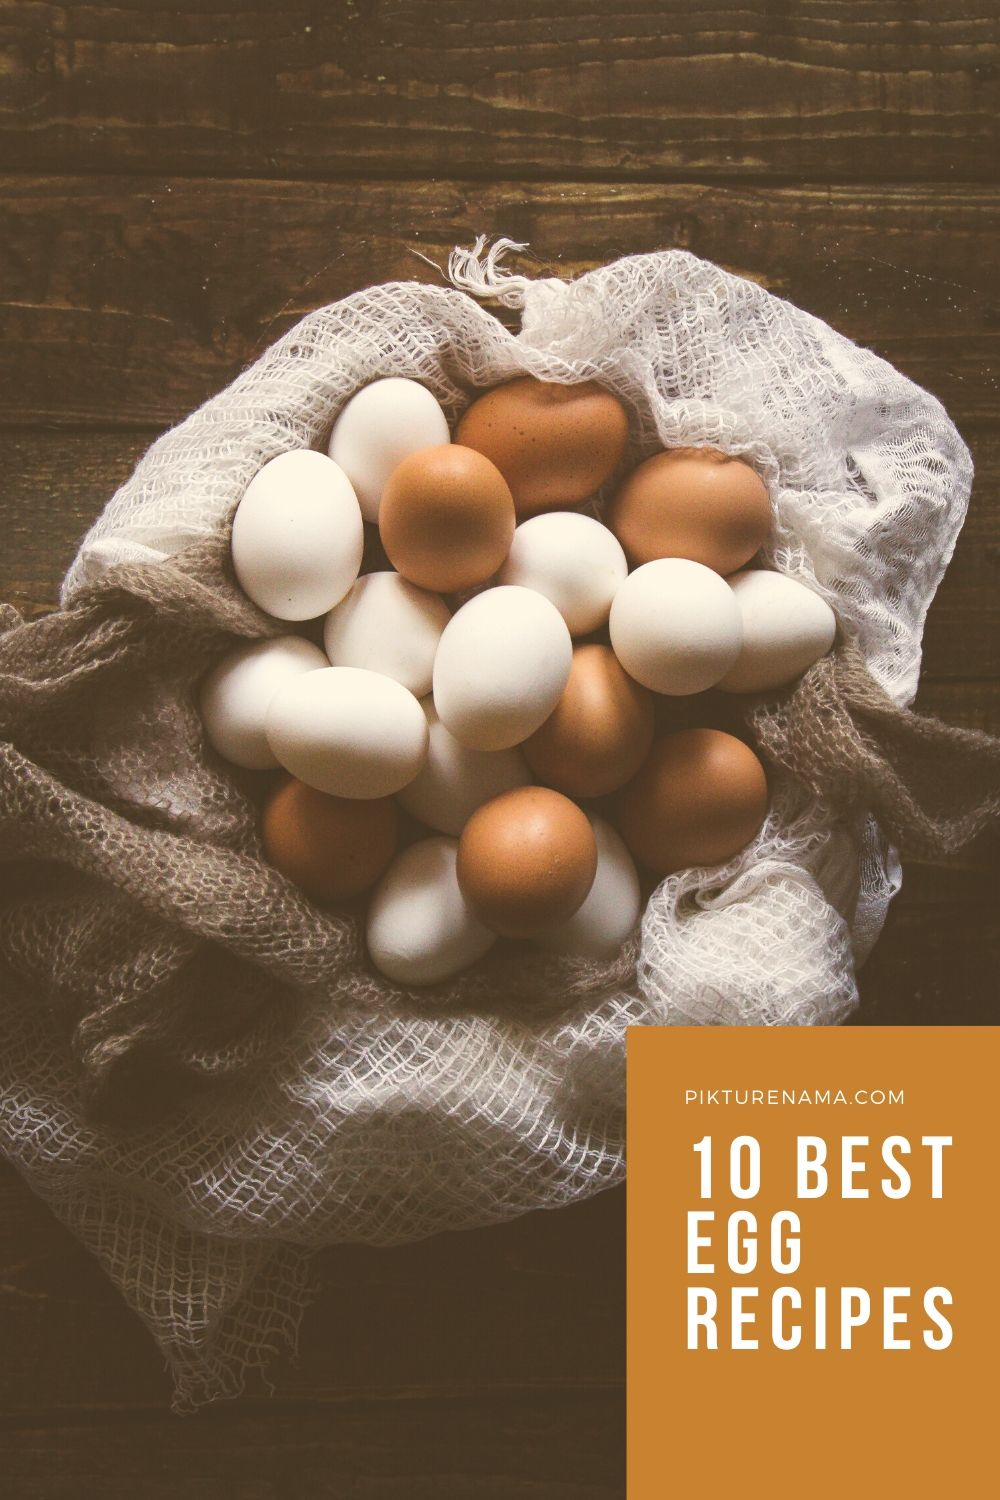 10 best egg recipes that we recommend - Pinterest